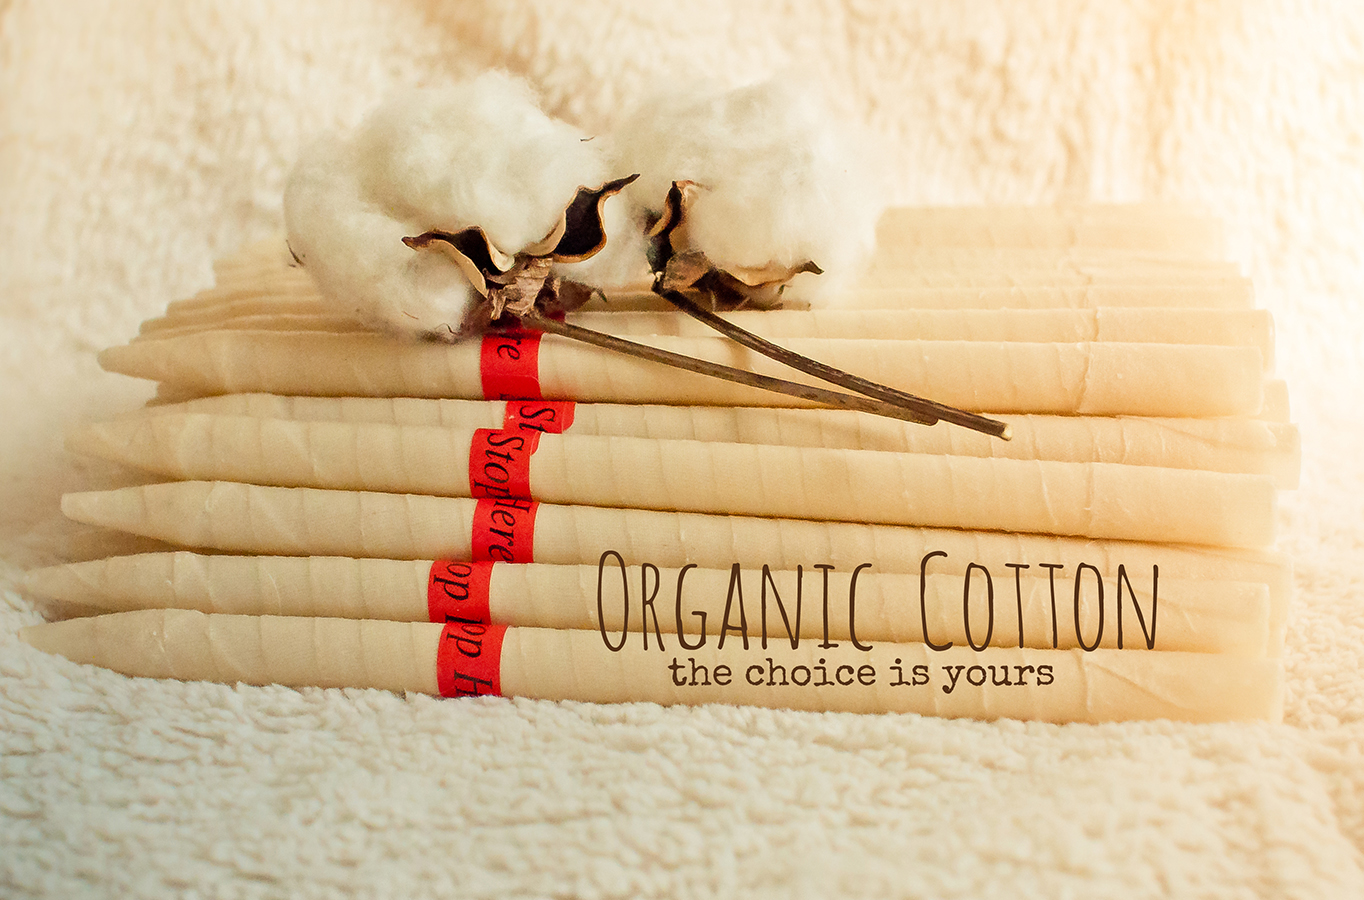 organic cotton candle 6 full res final resize